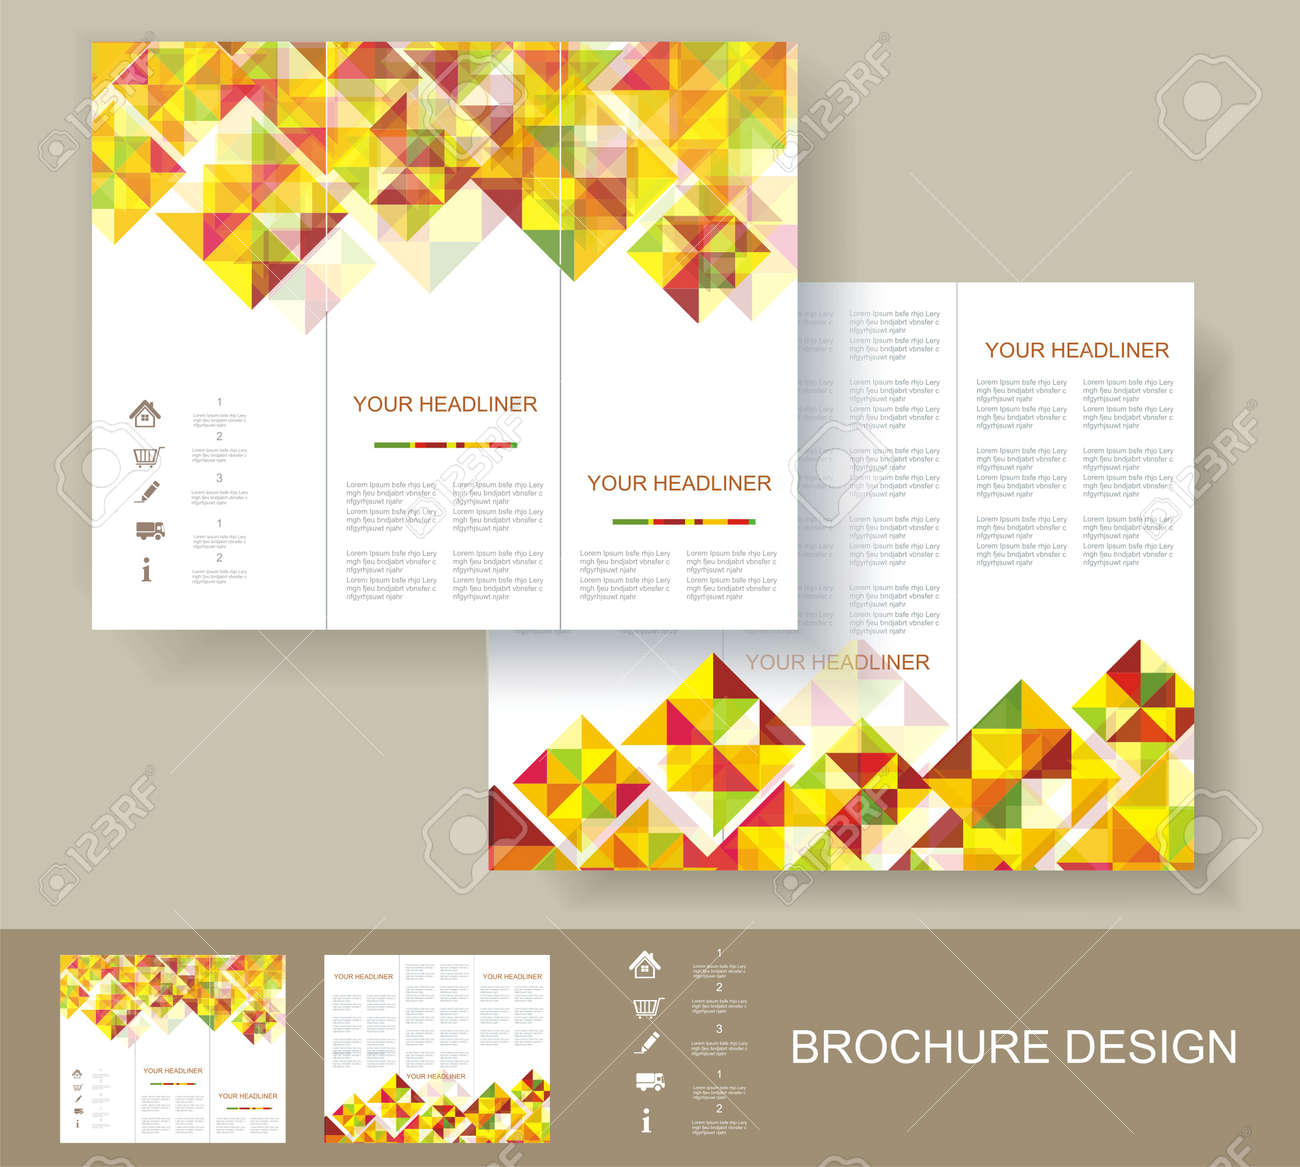 Poster design book - Print Poster Design Template Book Cover Background Design Graphics Lay Out